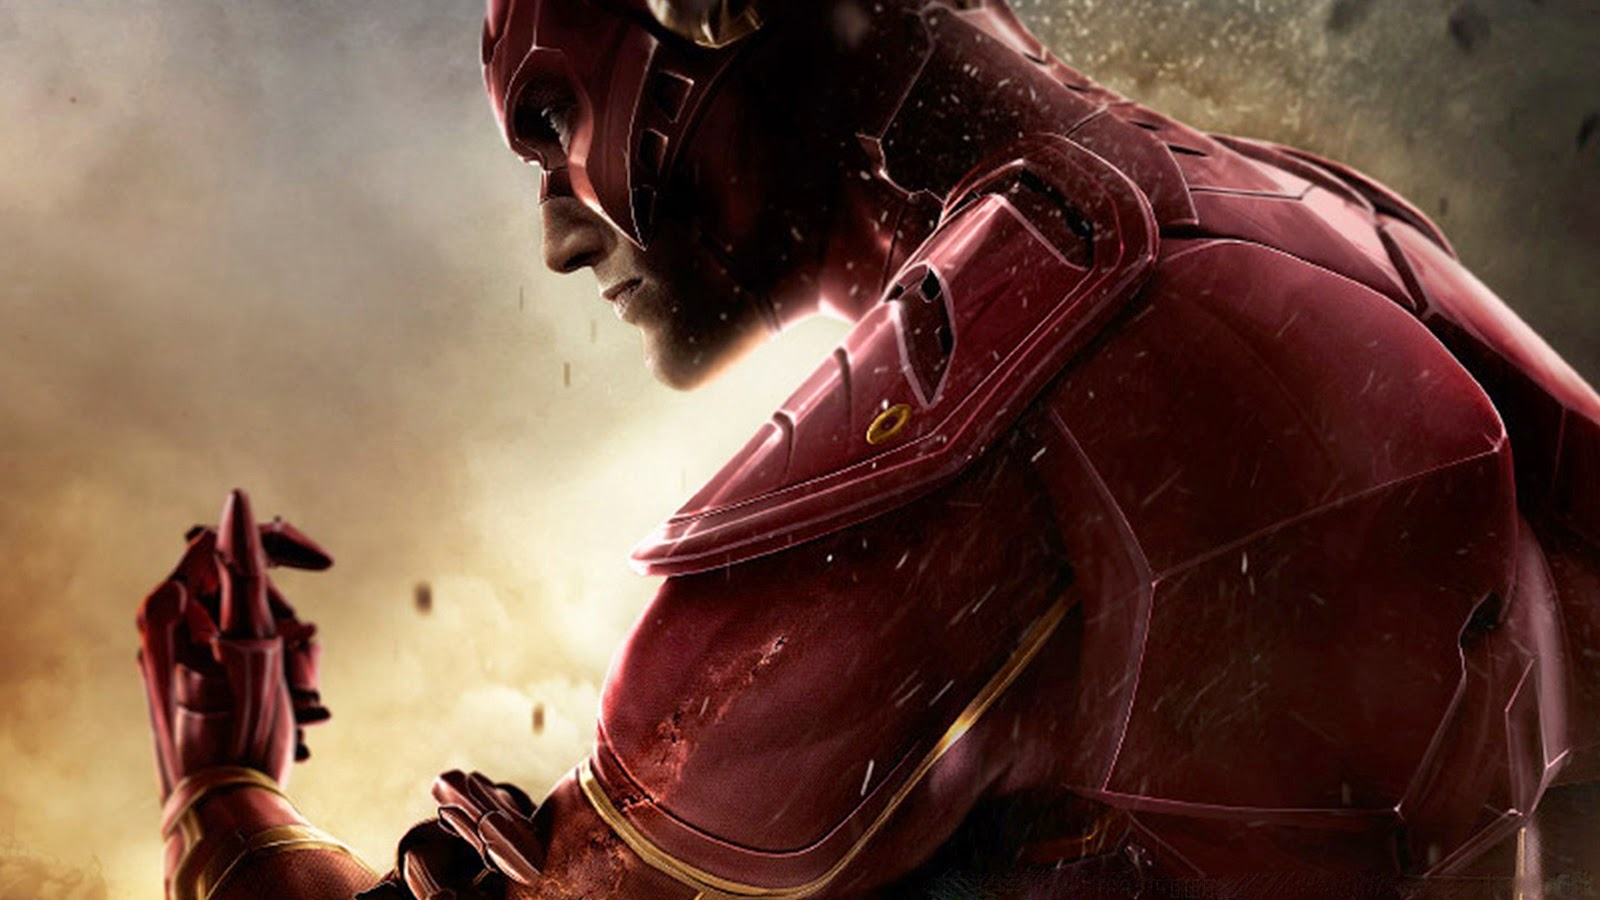 Flash TV Series HD 1080p Wallpapers Best on Internet LIKESWAGON 1600x900